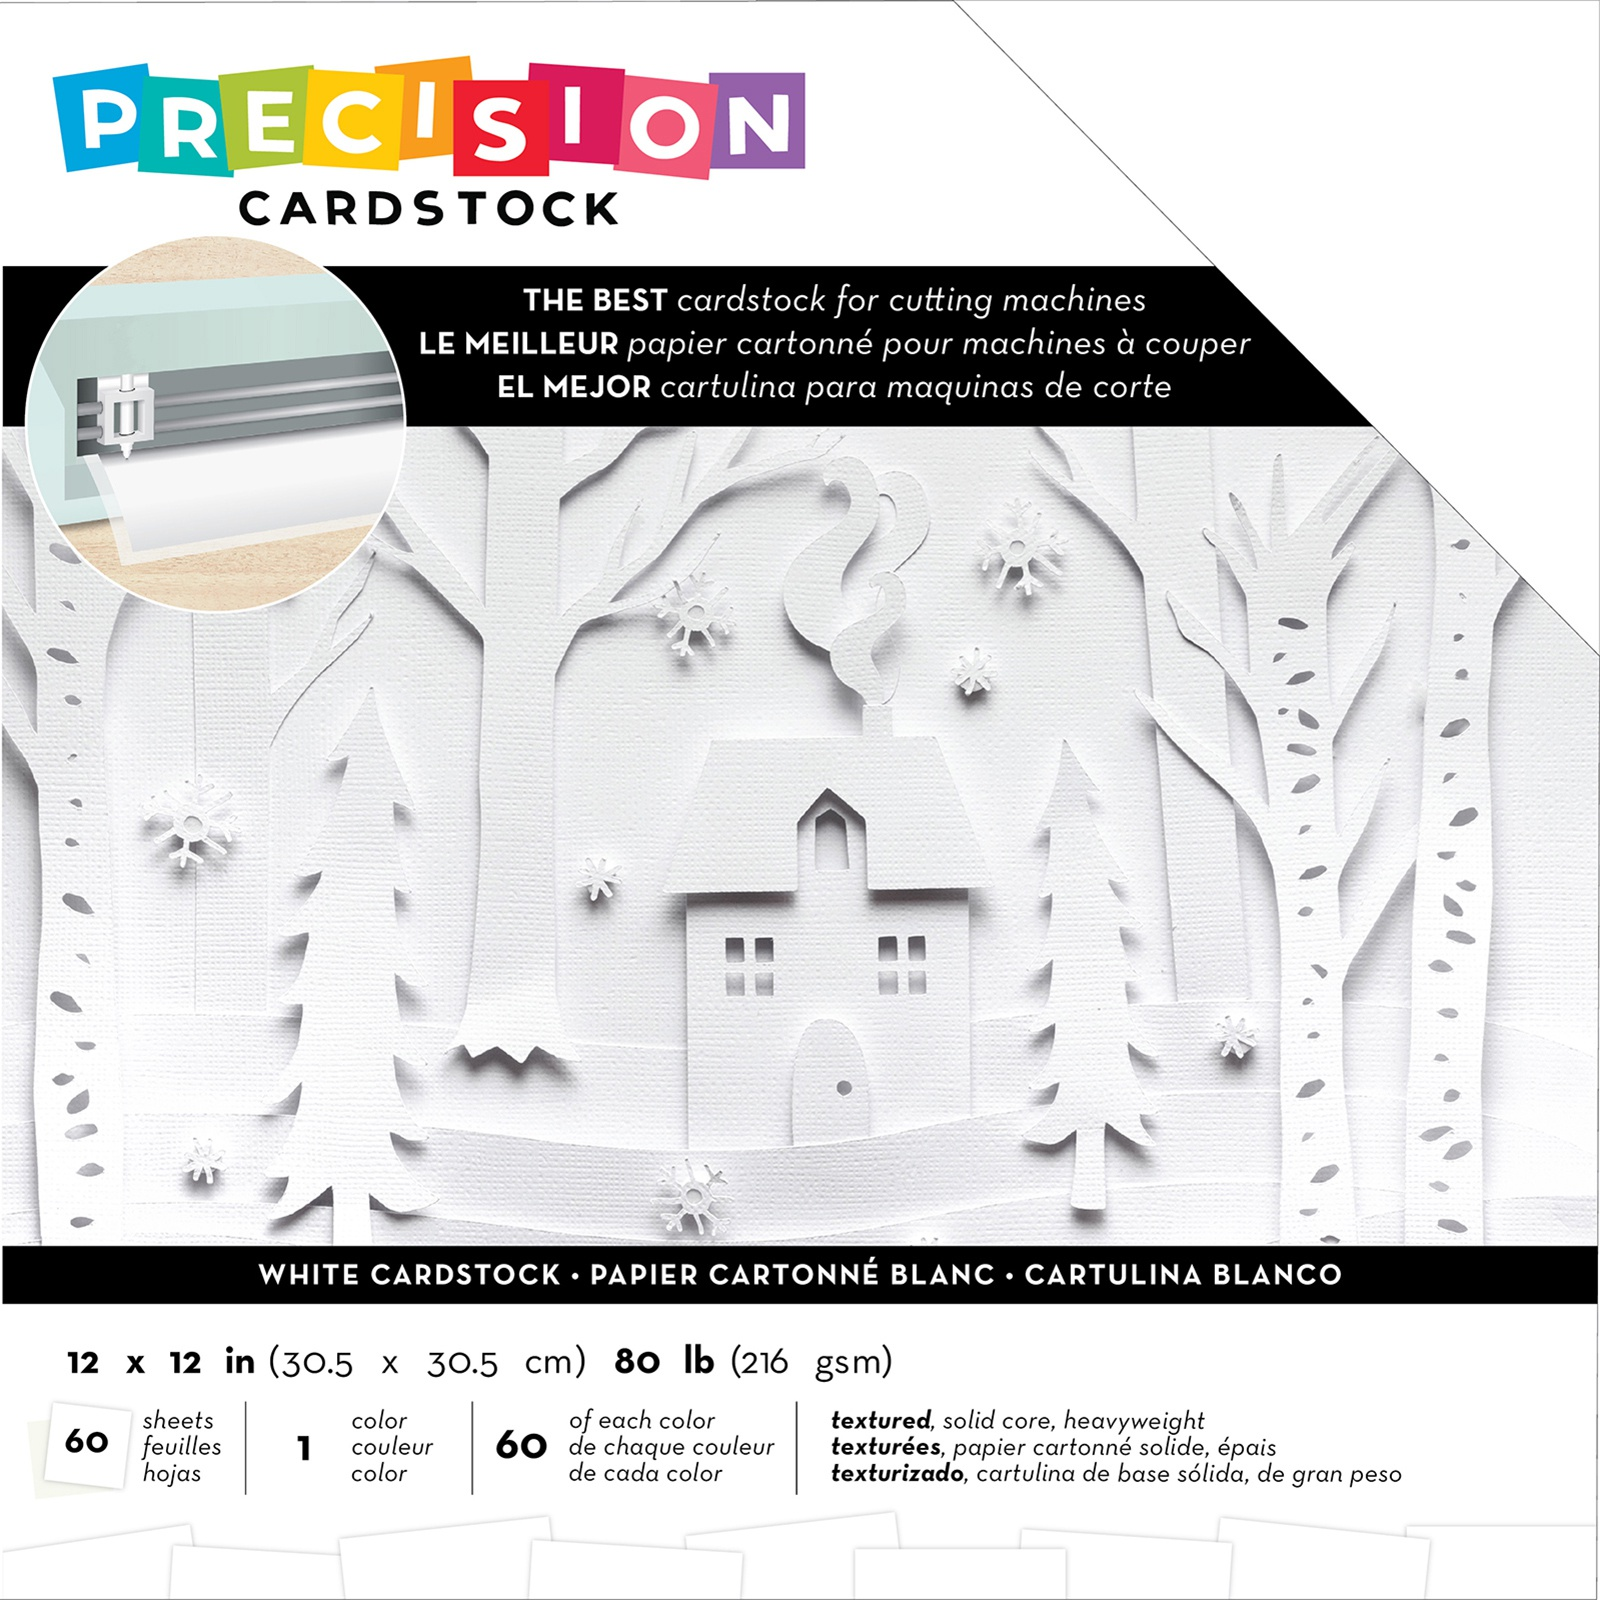 American Crafts Precision Cardstock Pack 80lb 12X12 60/Pkg-White/Textured